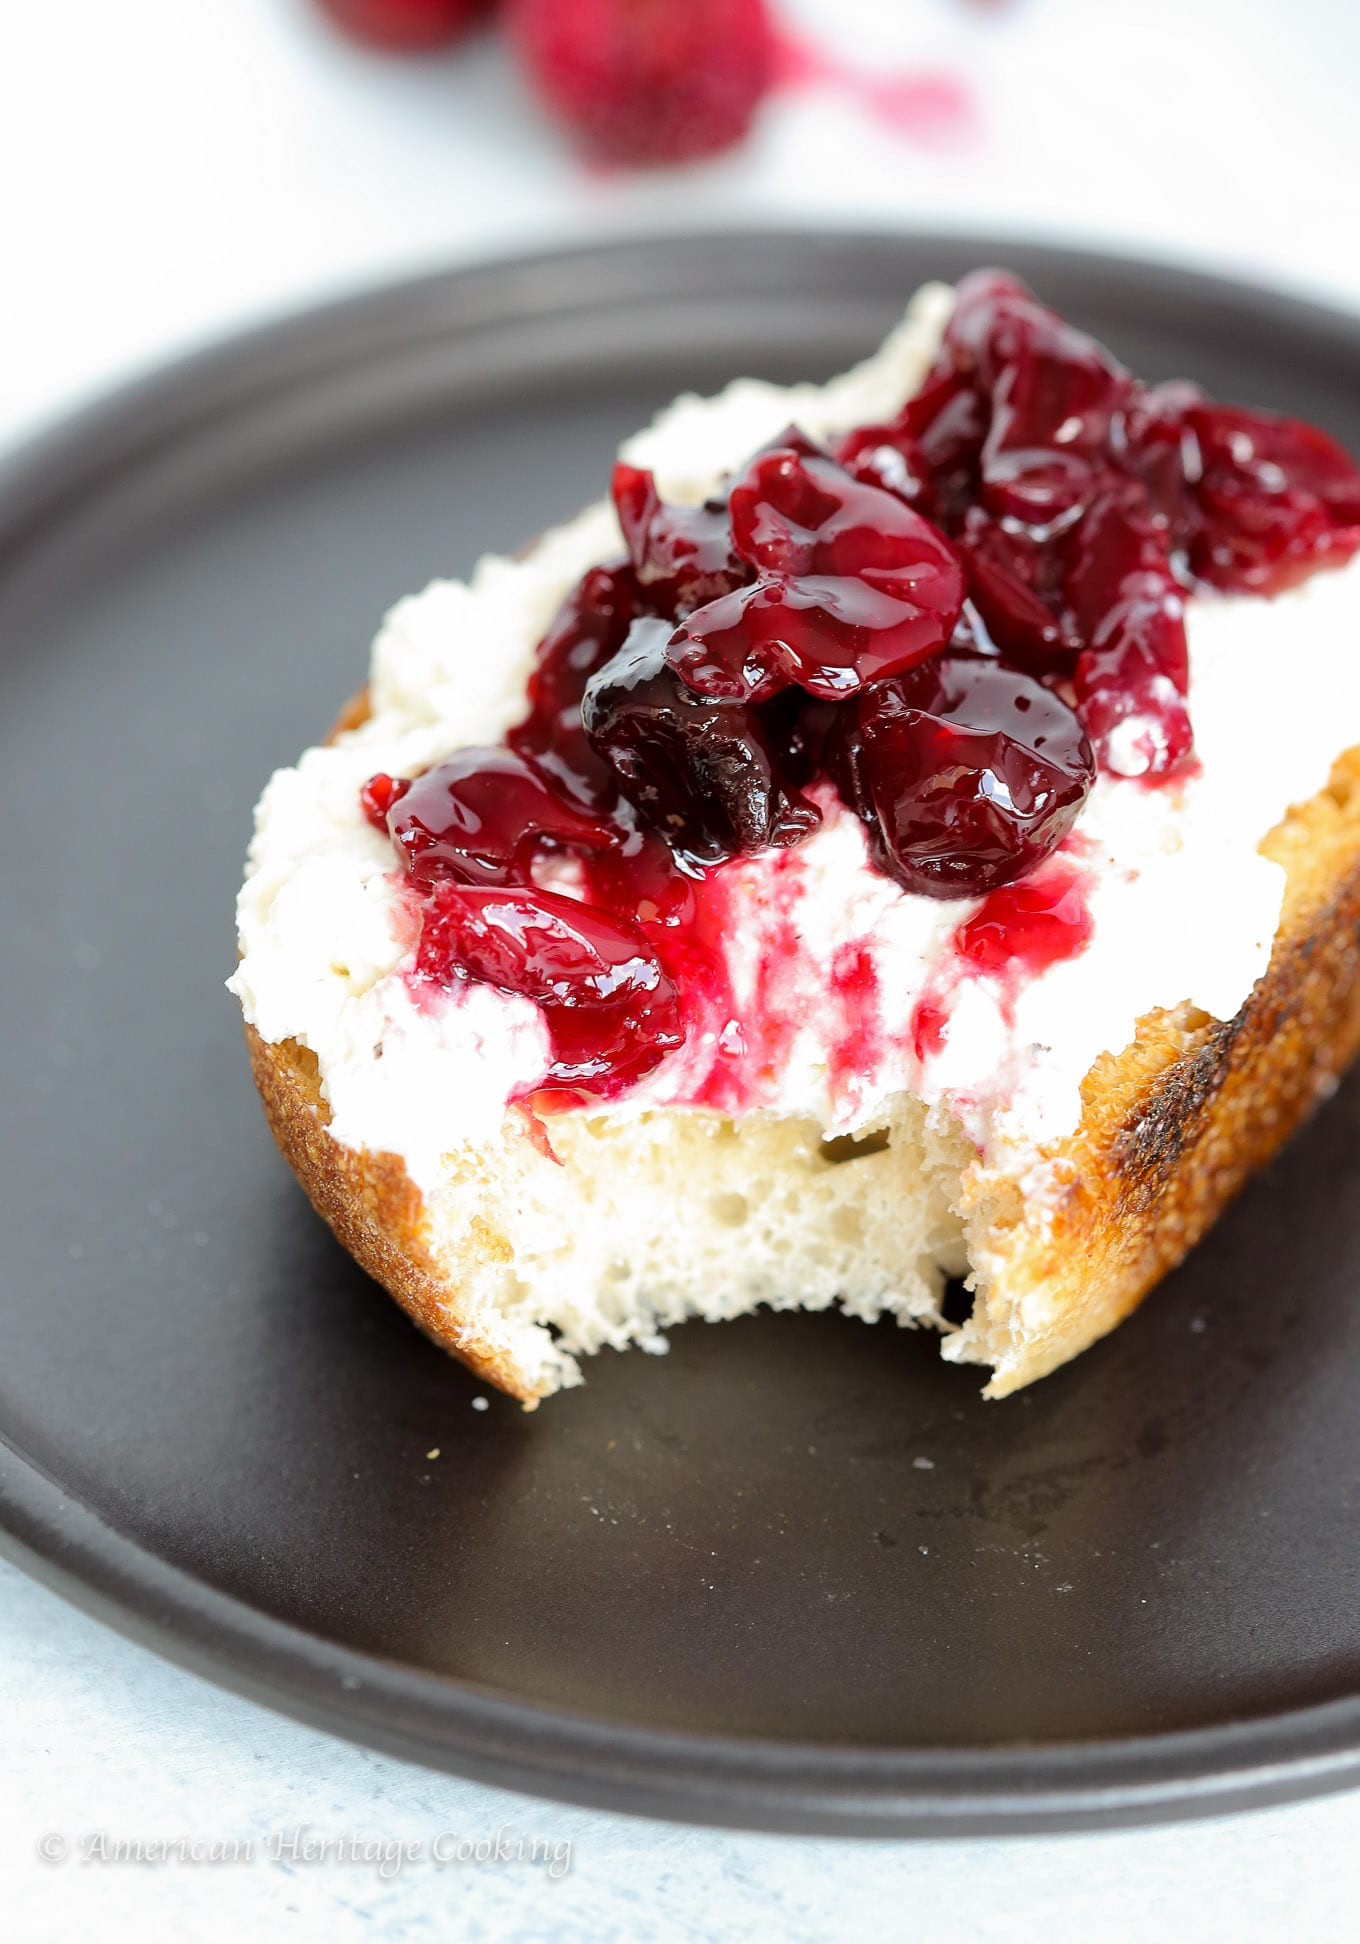 These Cherry Preserves are quick and easy! Stock up on Summer's bounty and enjoy all year! I spread mine on black pepper honey ricotta toast for an easy snack or breakfast.